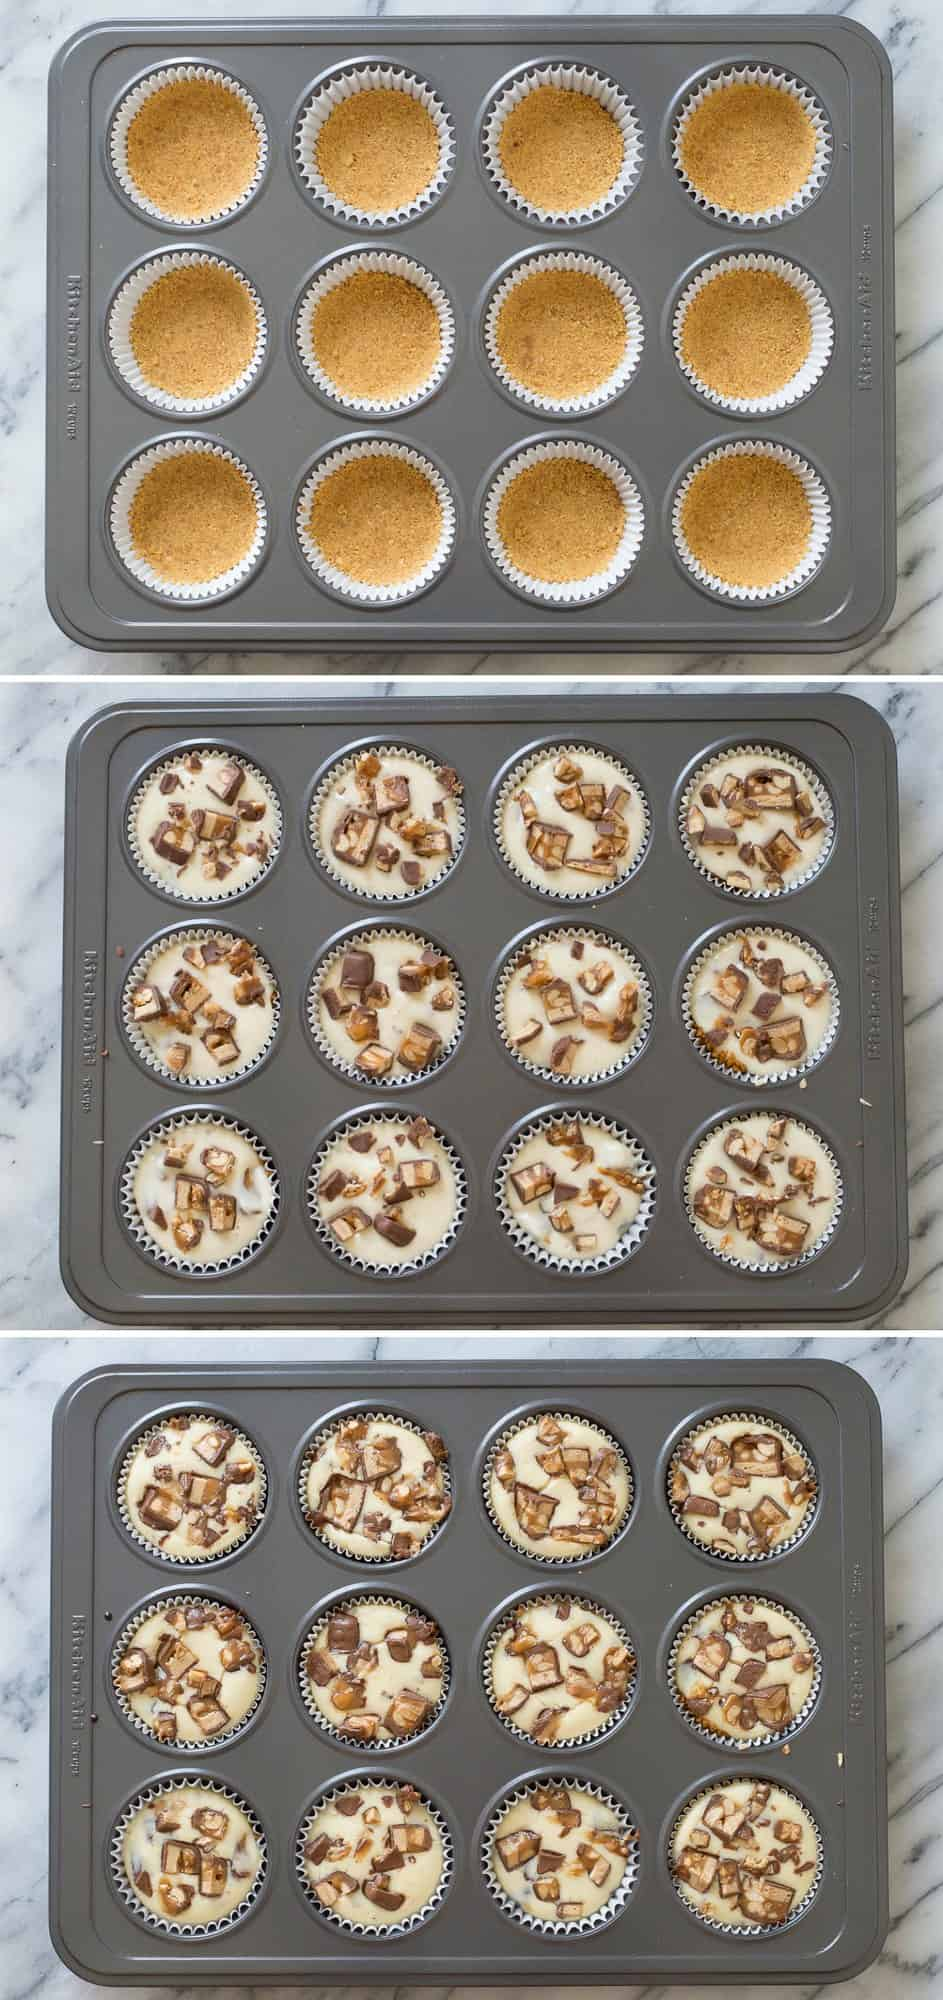 7 ingredient mini snicker's cheesecake recipe made in a muffin pan!